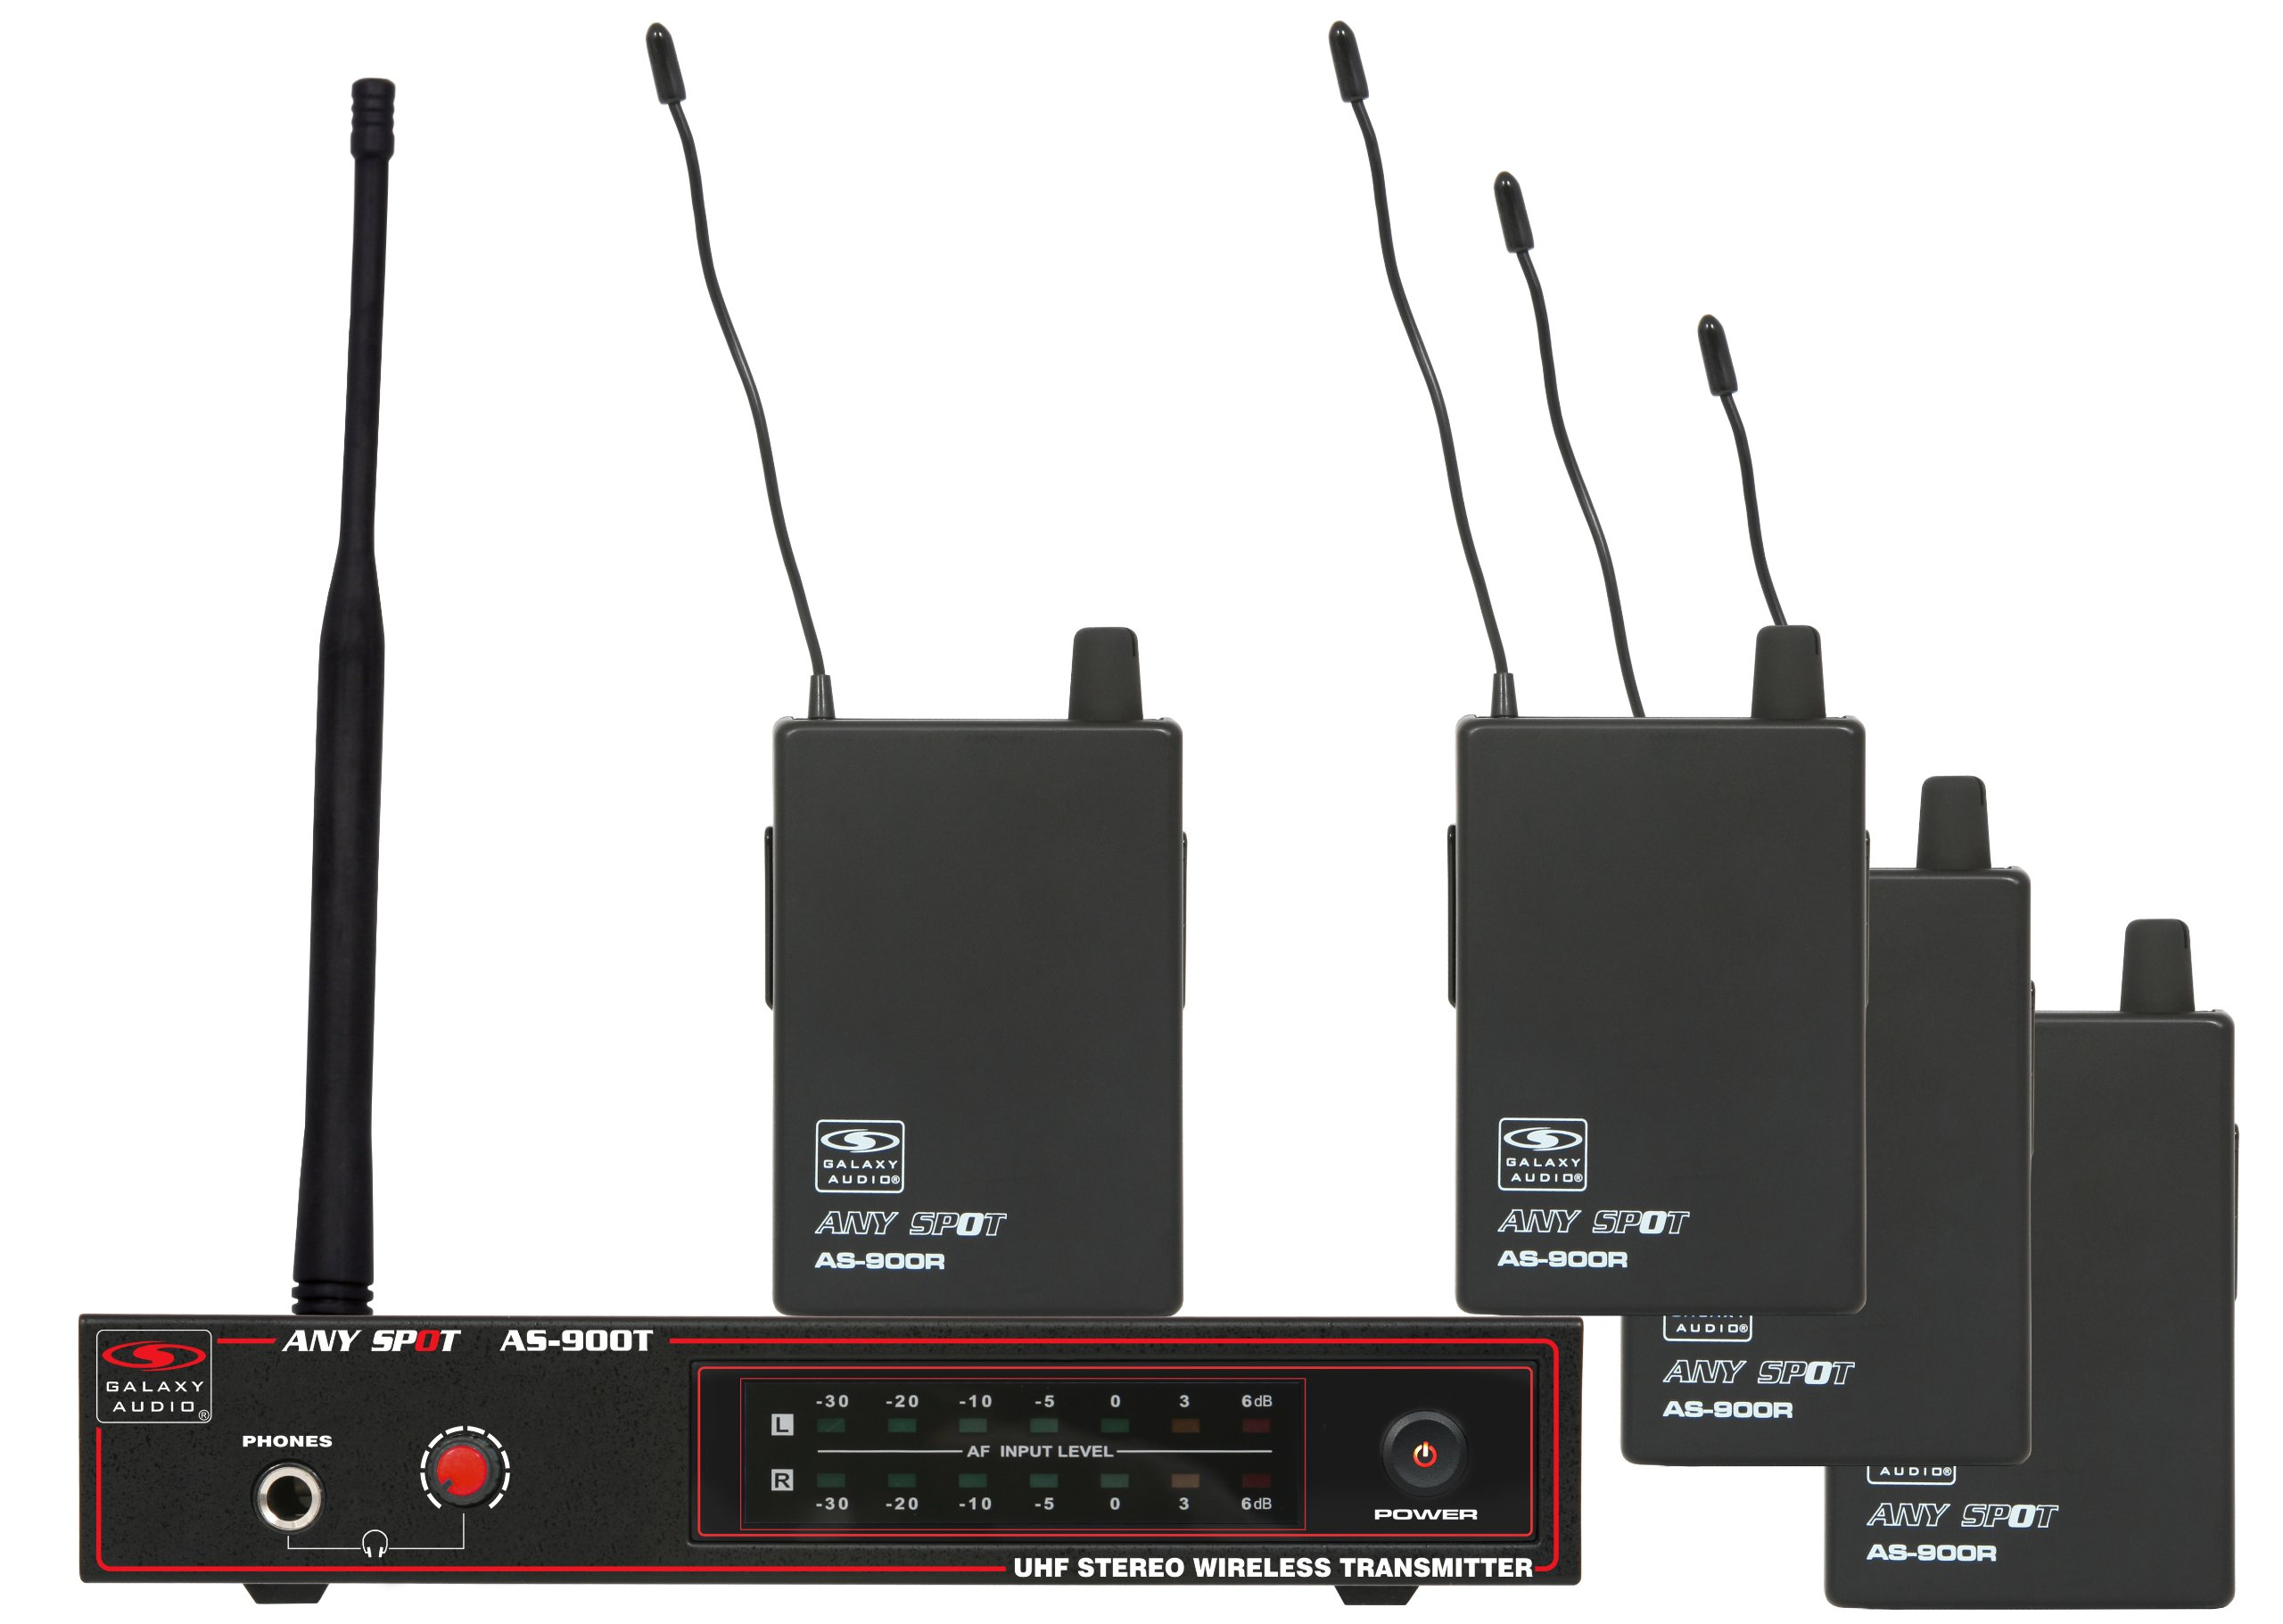 Galaxy Audio AS-900-4 Band Pack Wireless In-Ear Monitor System, Code N4 (521.85 MHz)